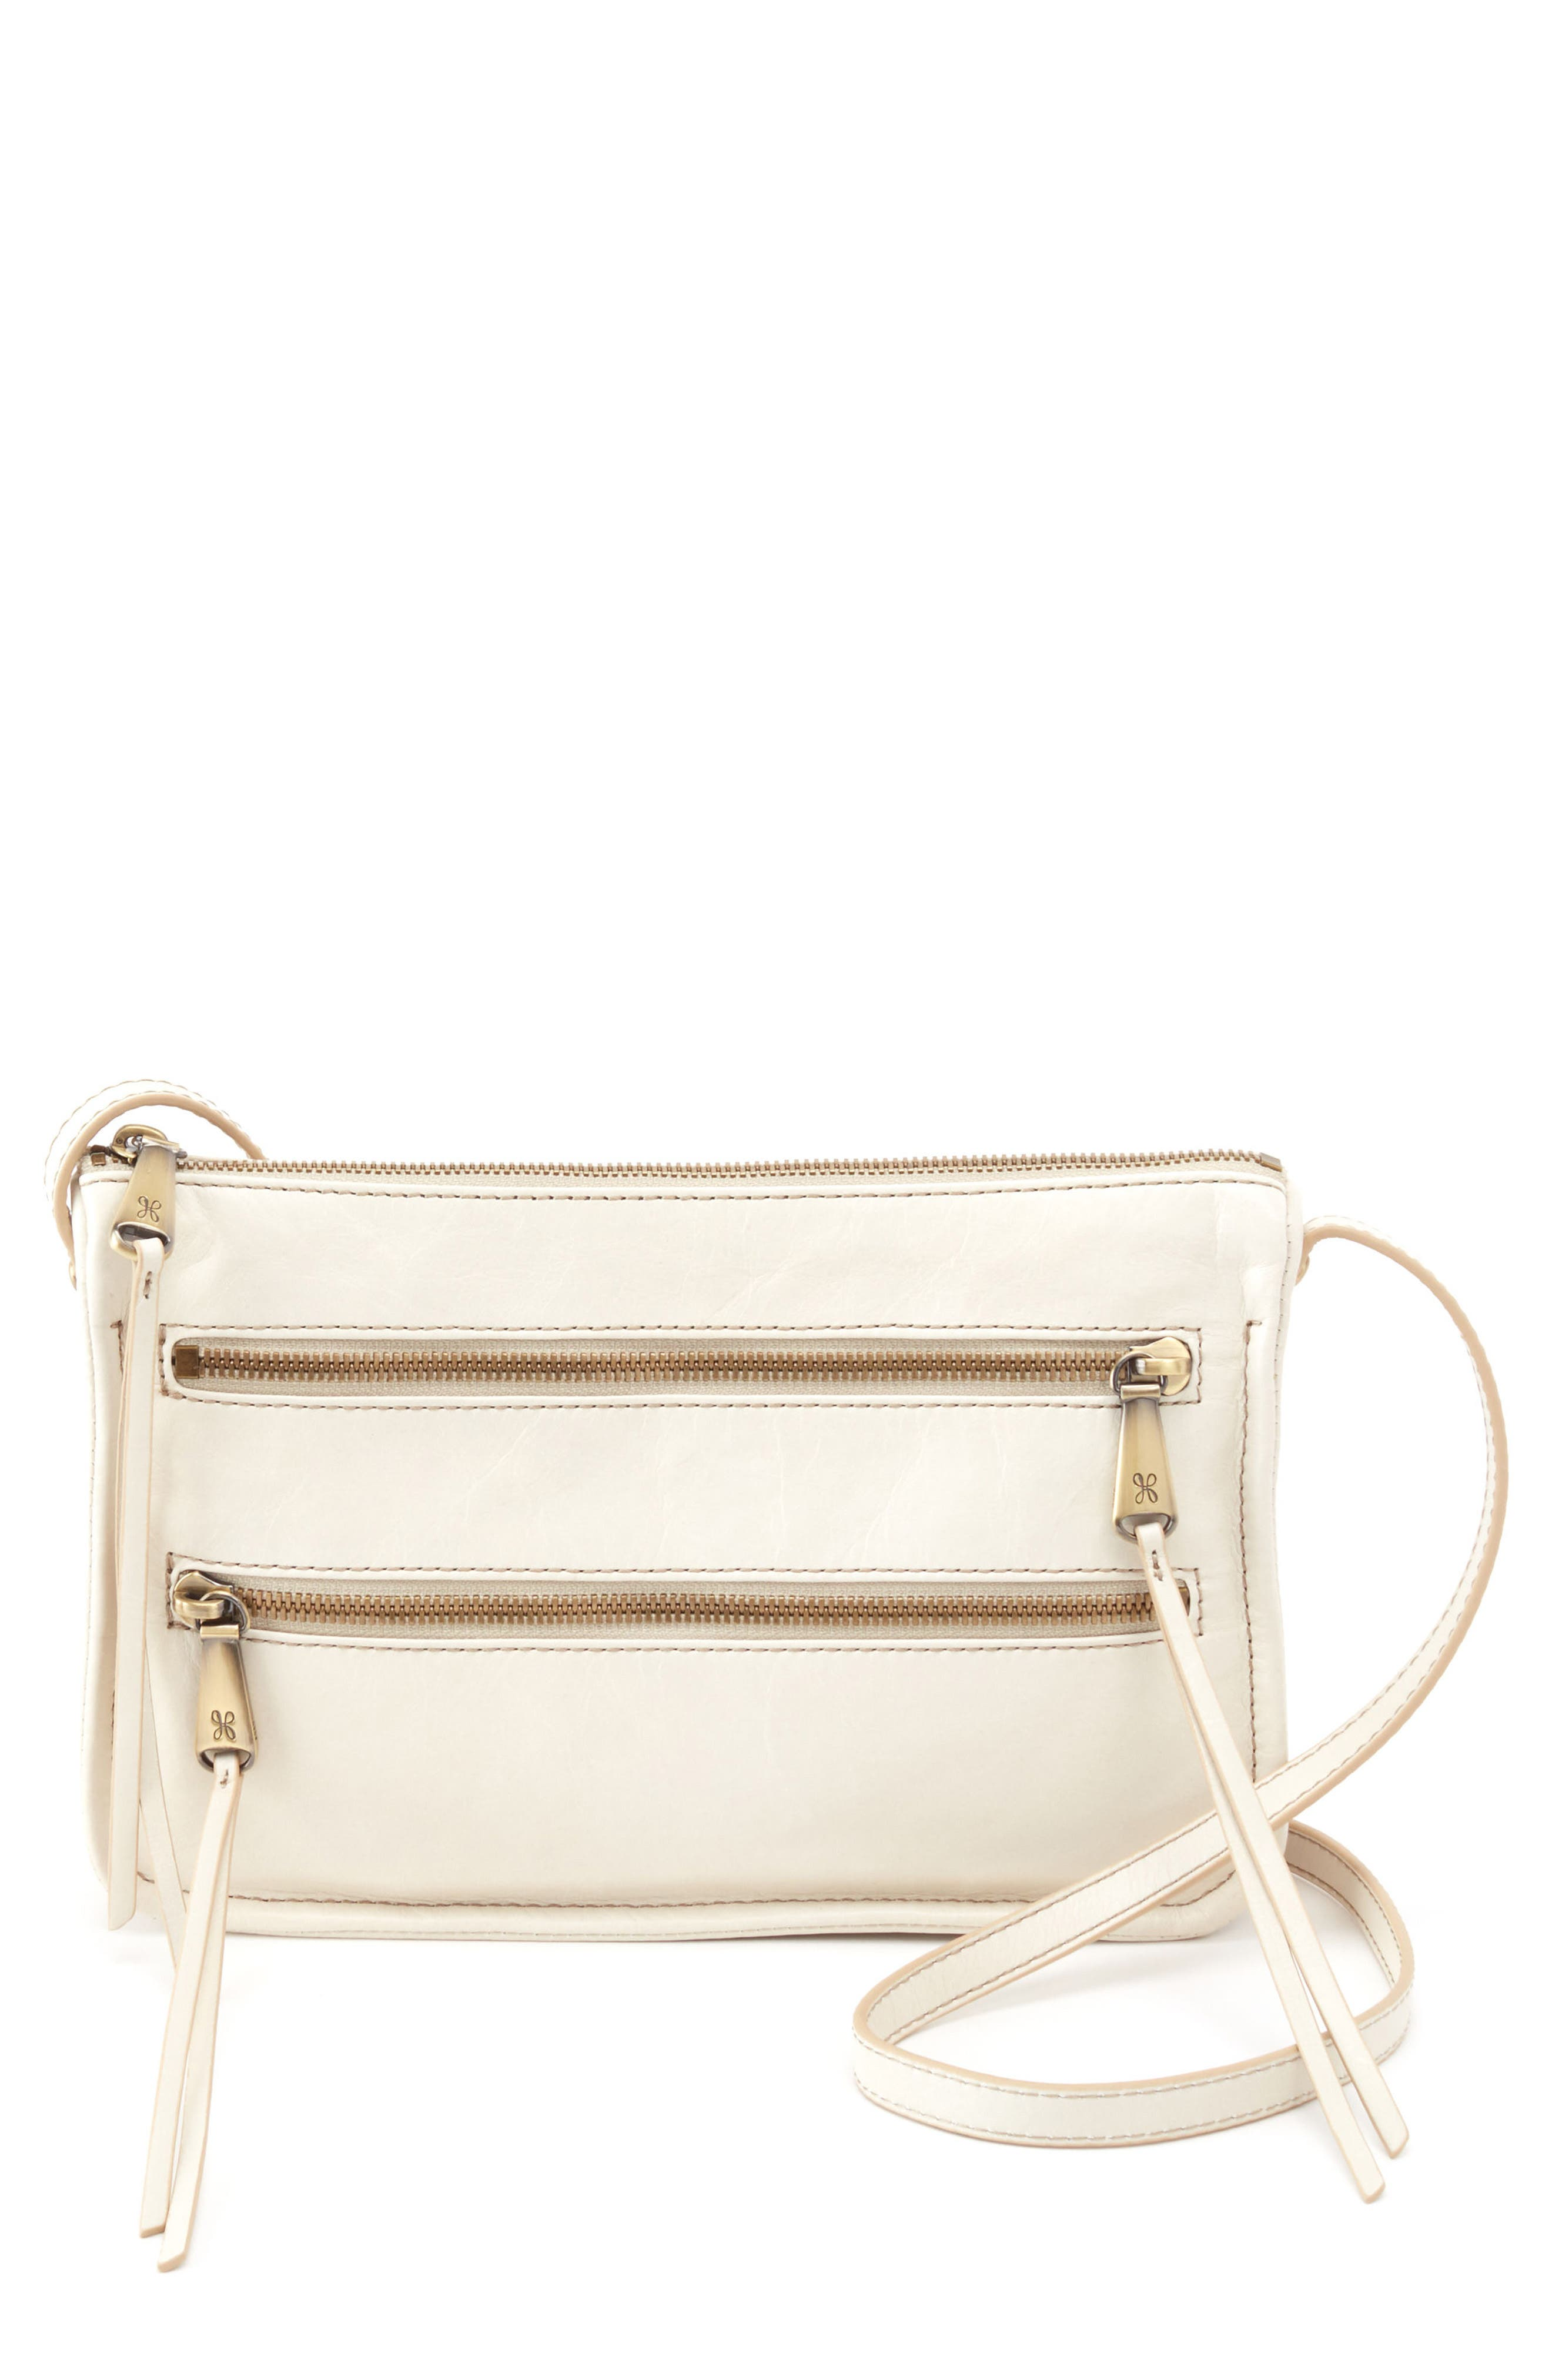 Mission Crossbody Bag,                         Main,                         color, 120